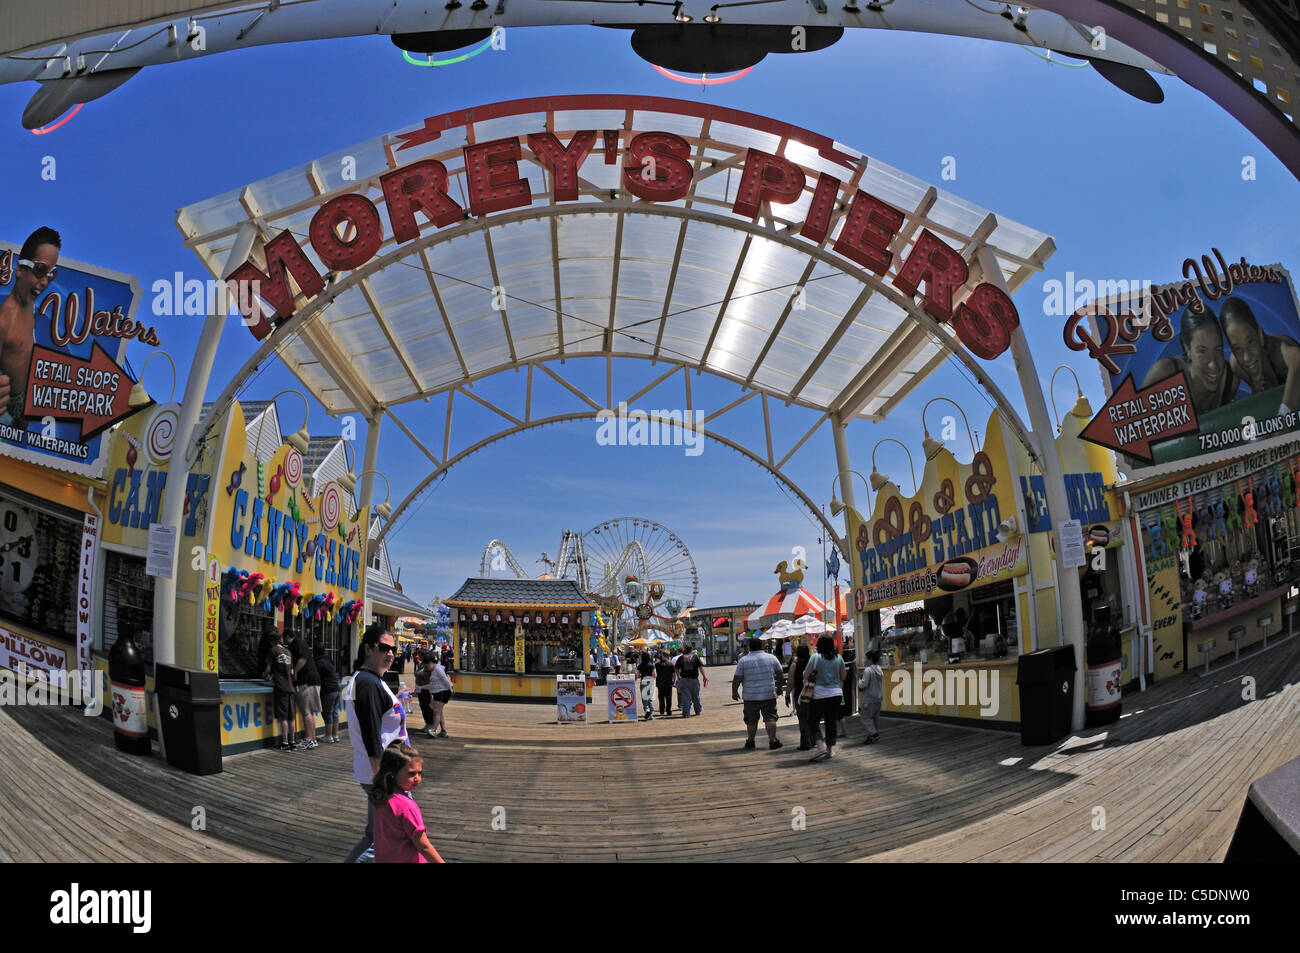 Entrance to Morey's Piers on the boardwalk in Wildwood, New Jersey (fisheye lens) - Stock Image